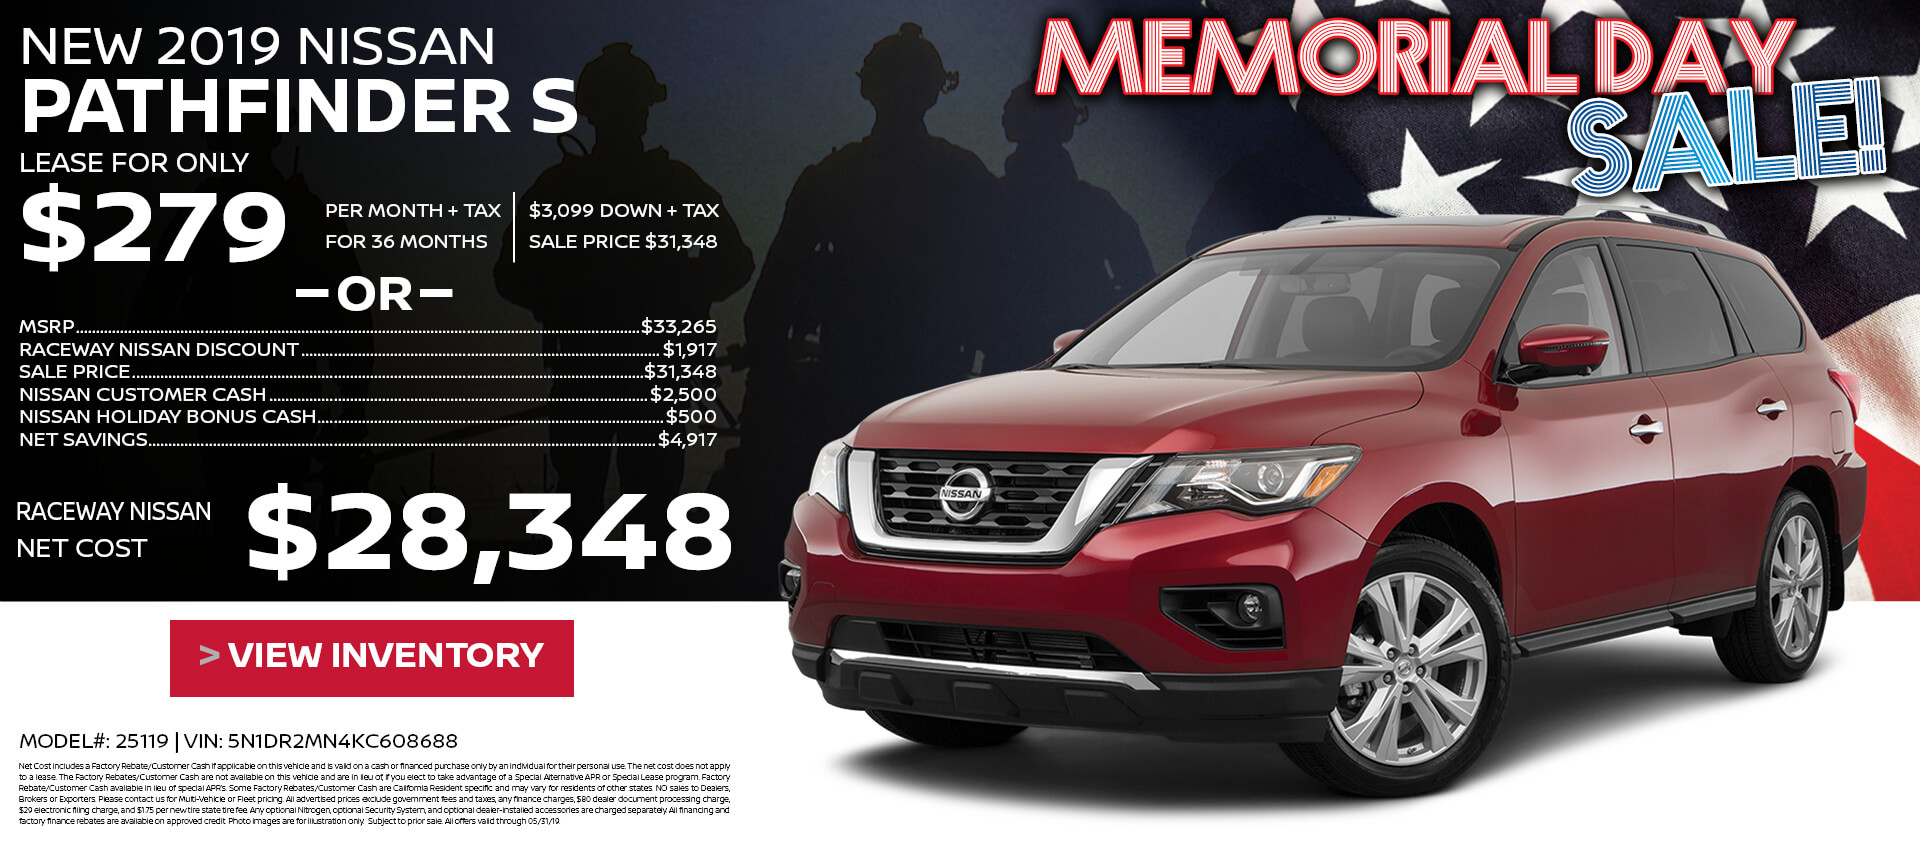 Pathfinder Lease $279